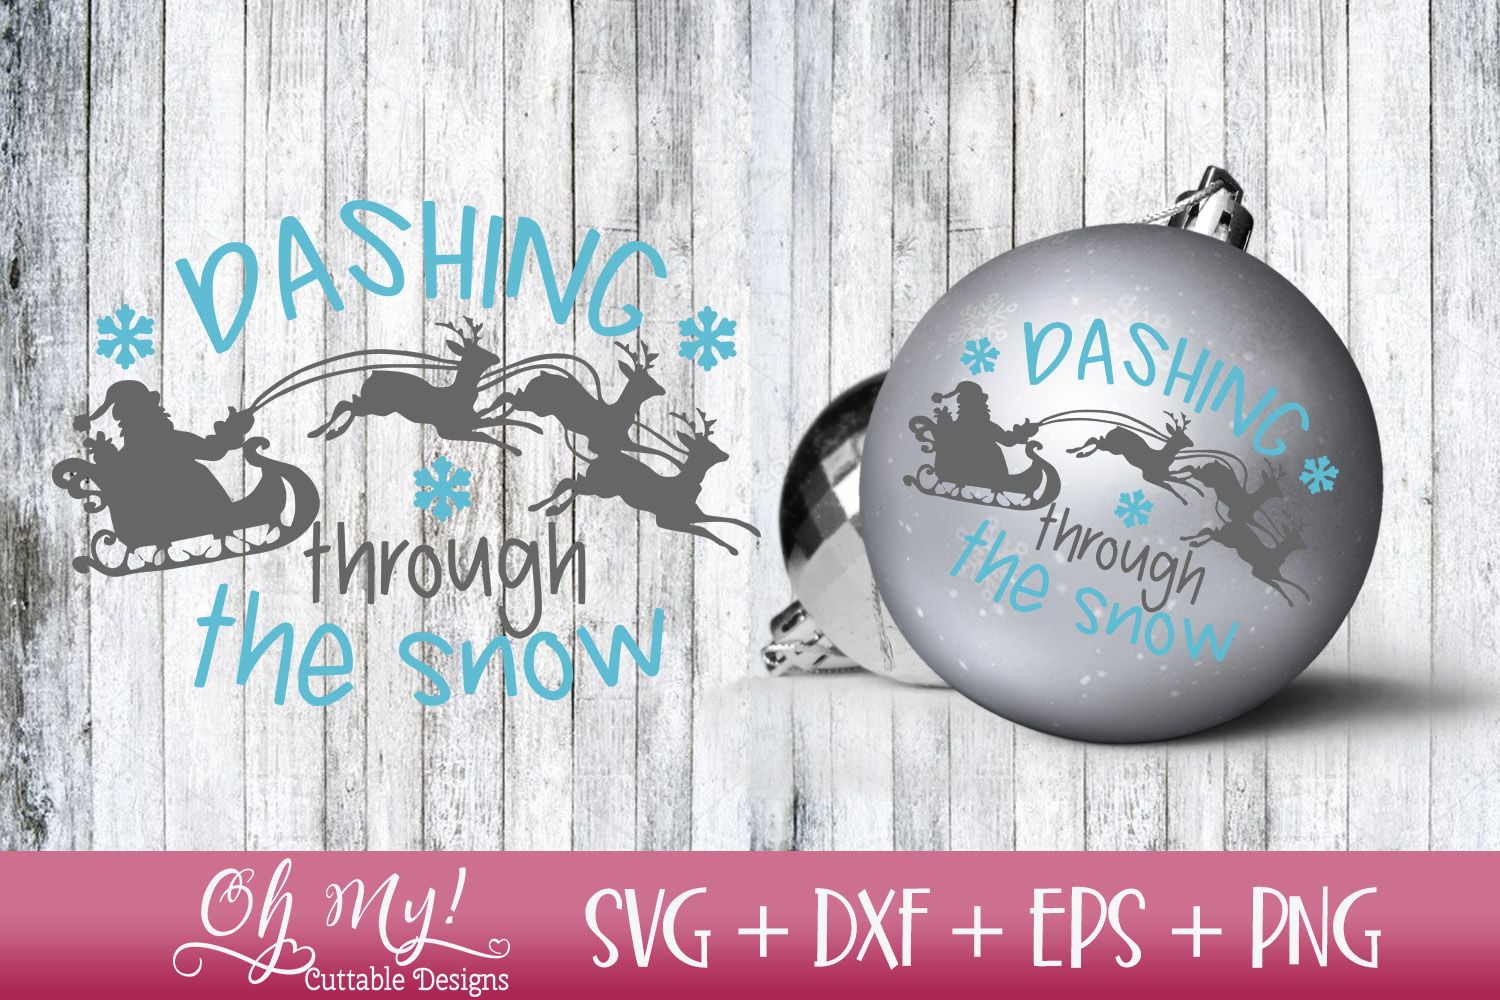 Dashing Through The Snow Svg Dxf Eps Png Dashing Through The Snow Christmas Svg Silhouette Christmas